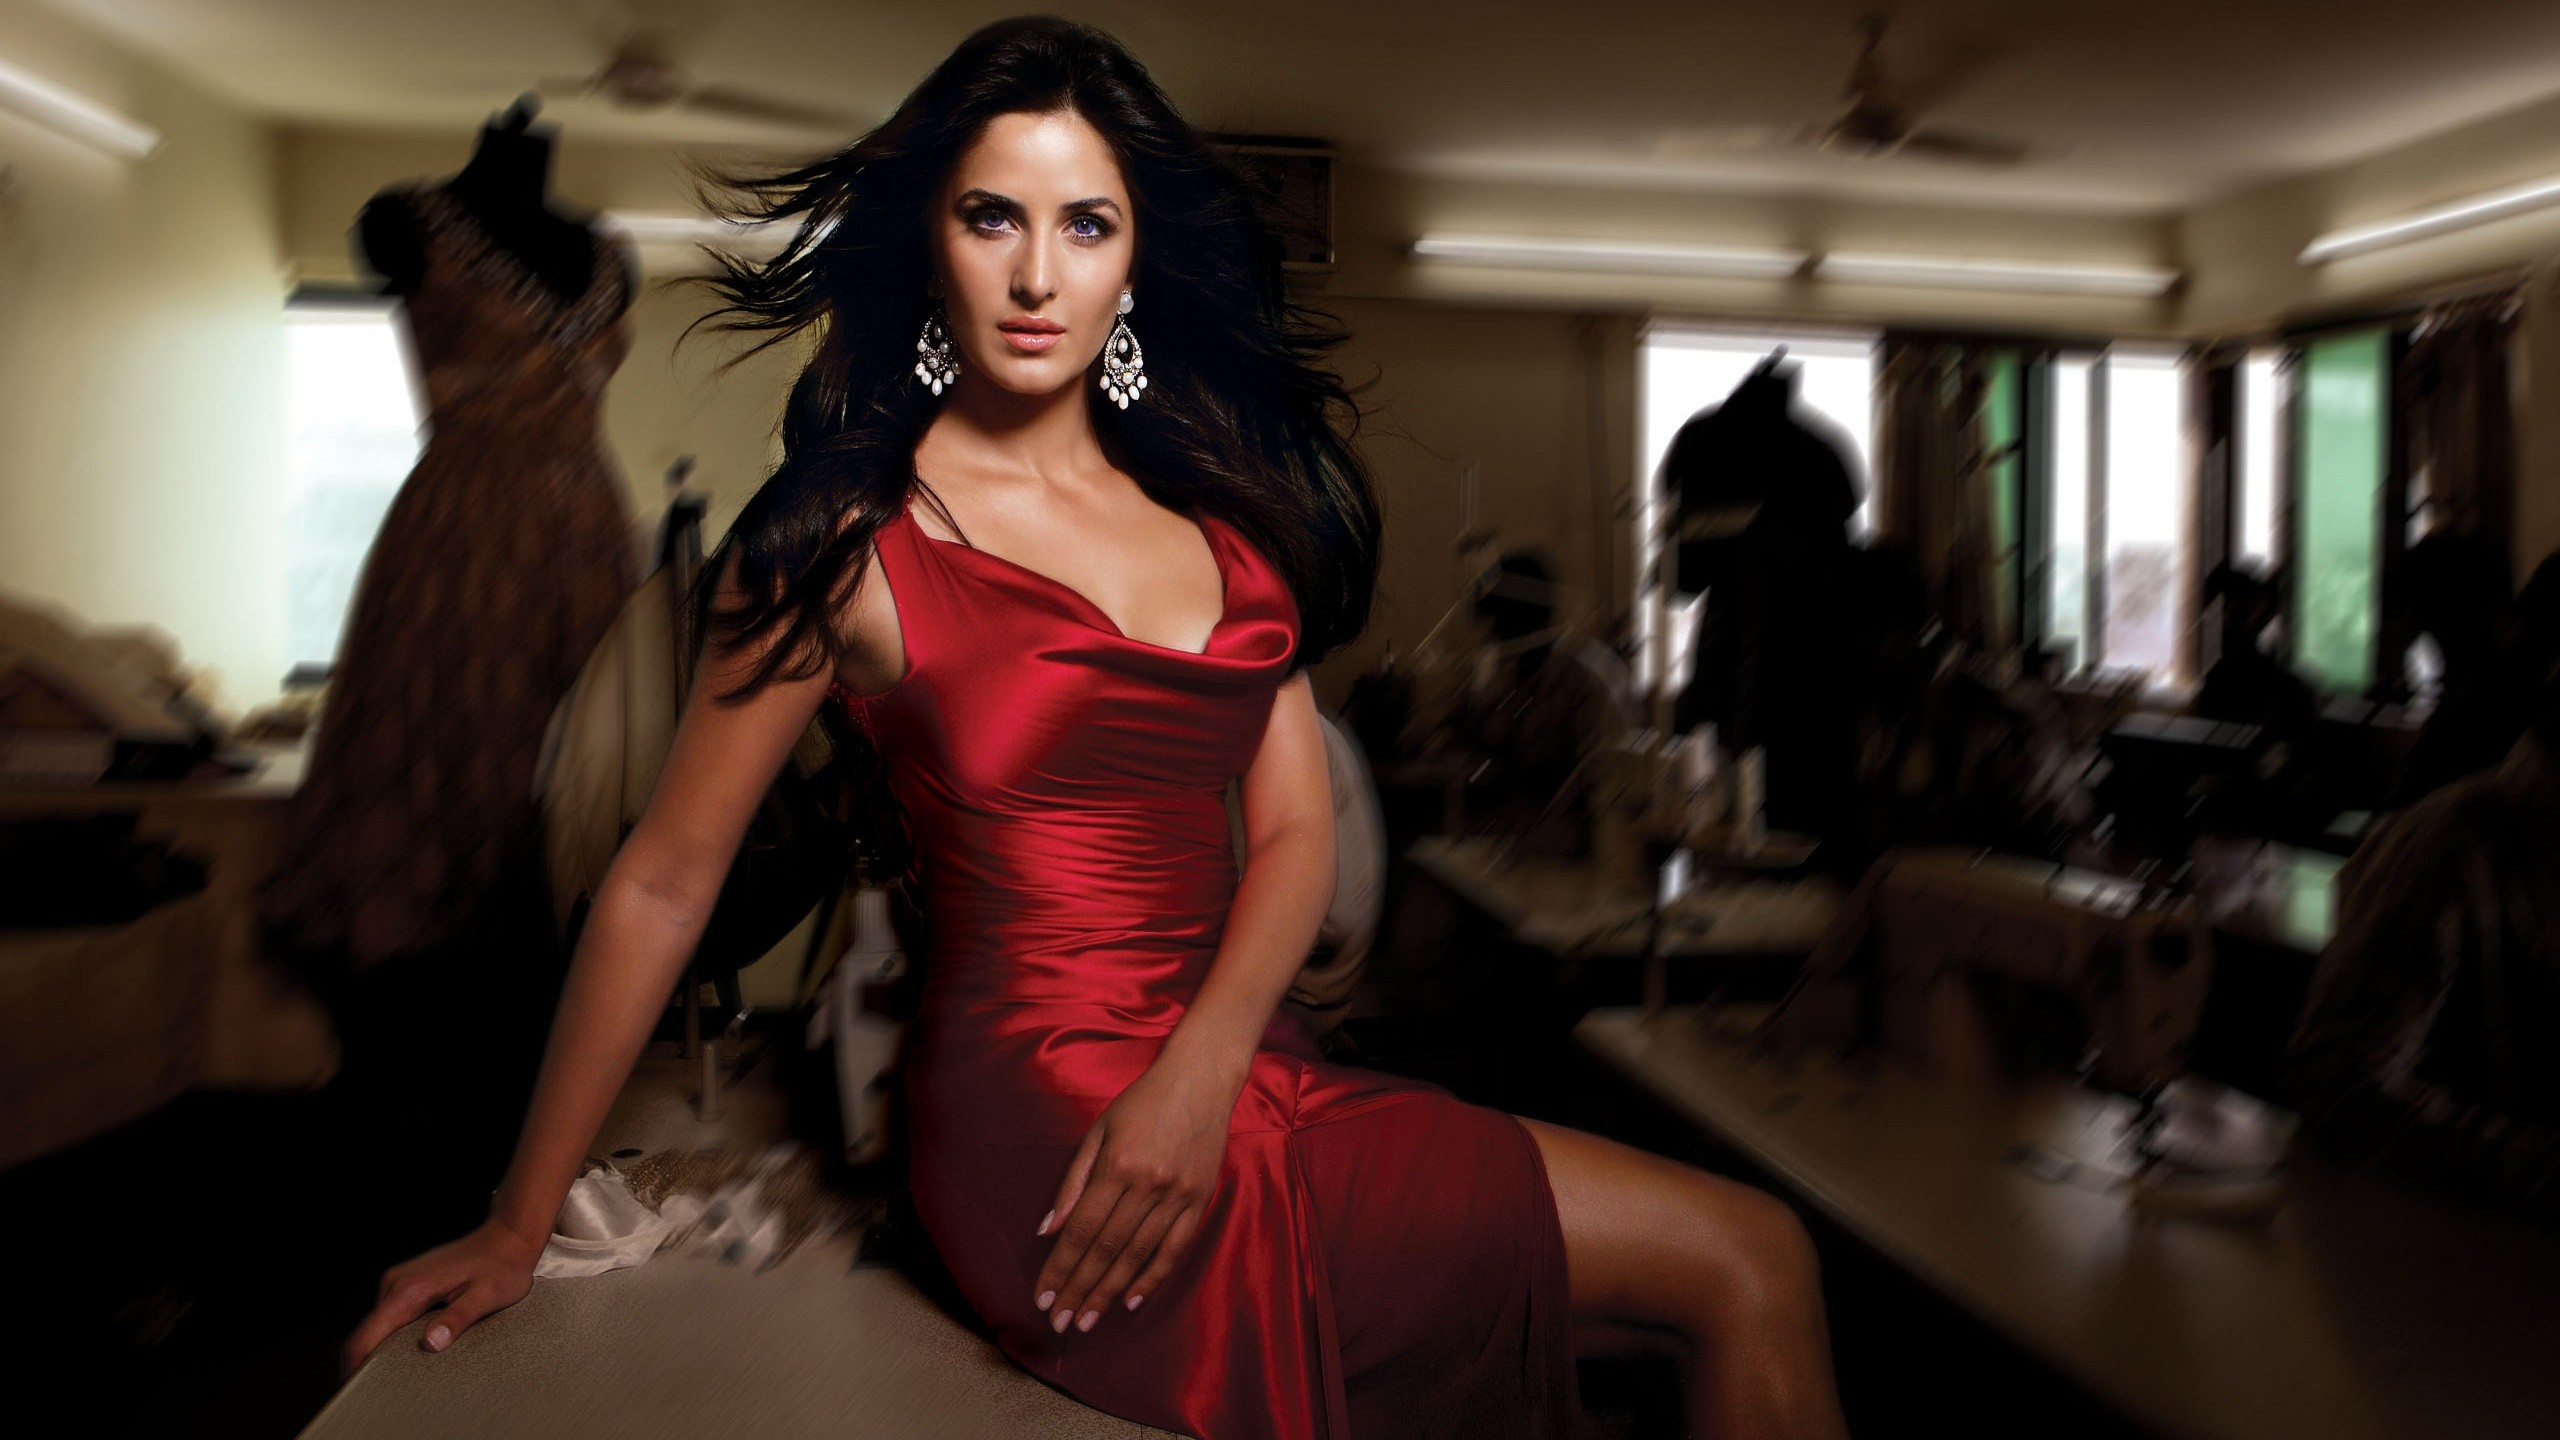 Sexy Katrina Kaif in Red Photos - Sexy Actress Pictures | Hot Actress Pictures